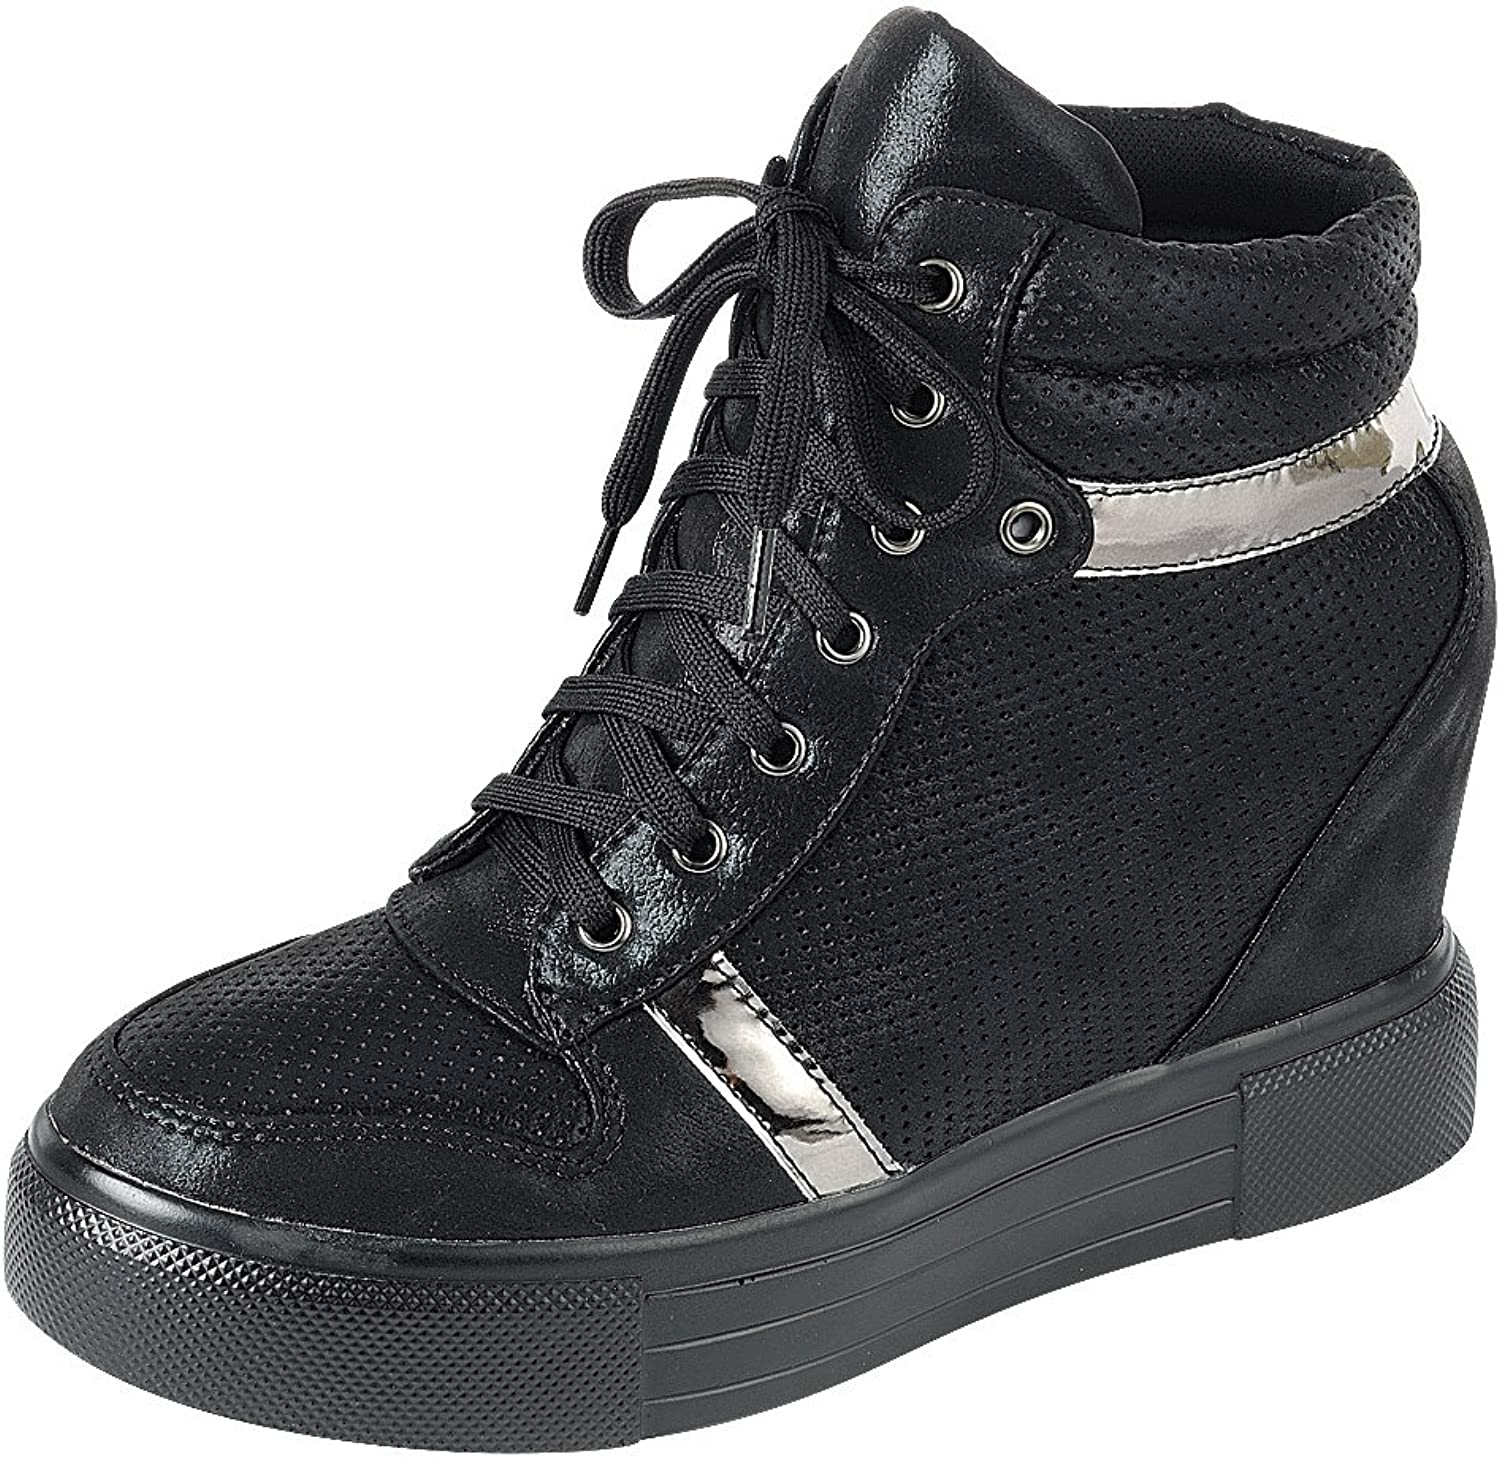 Cambridge Select Women's Closed Round Toe Lace-up Perforated Platform Fashion Sneaker Wedge